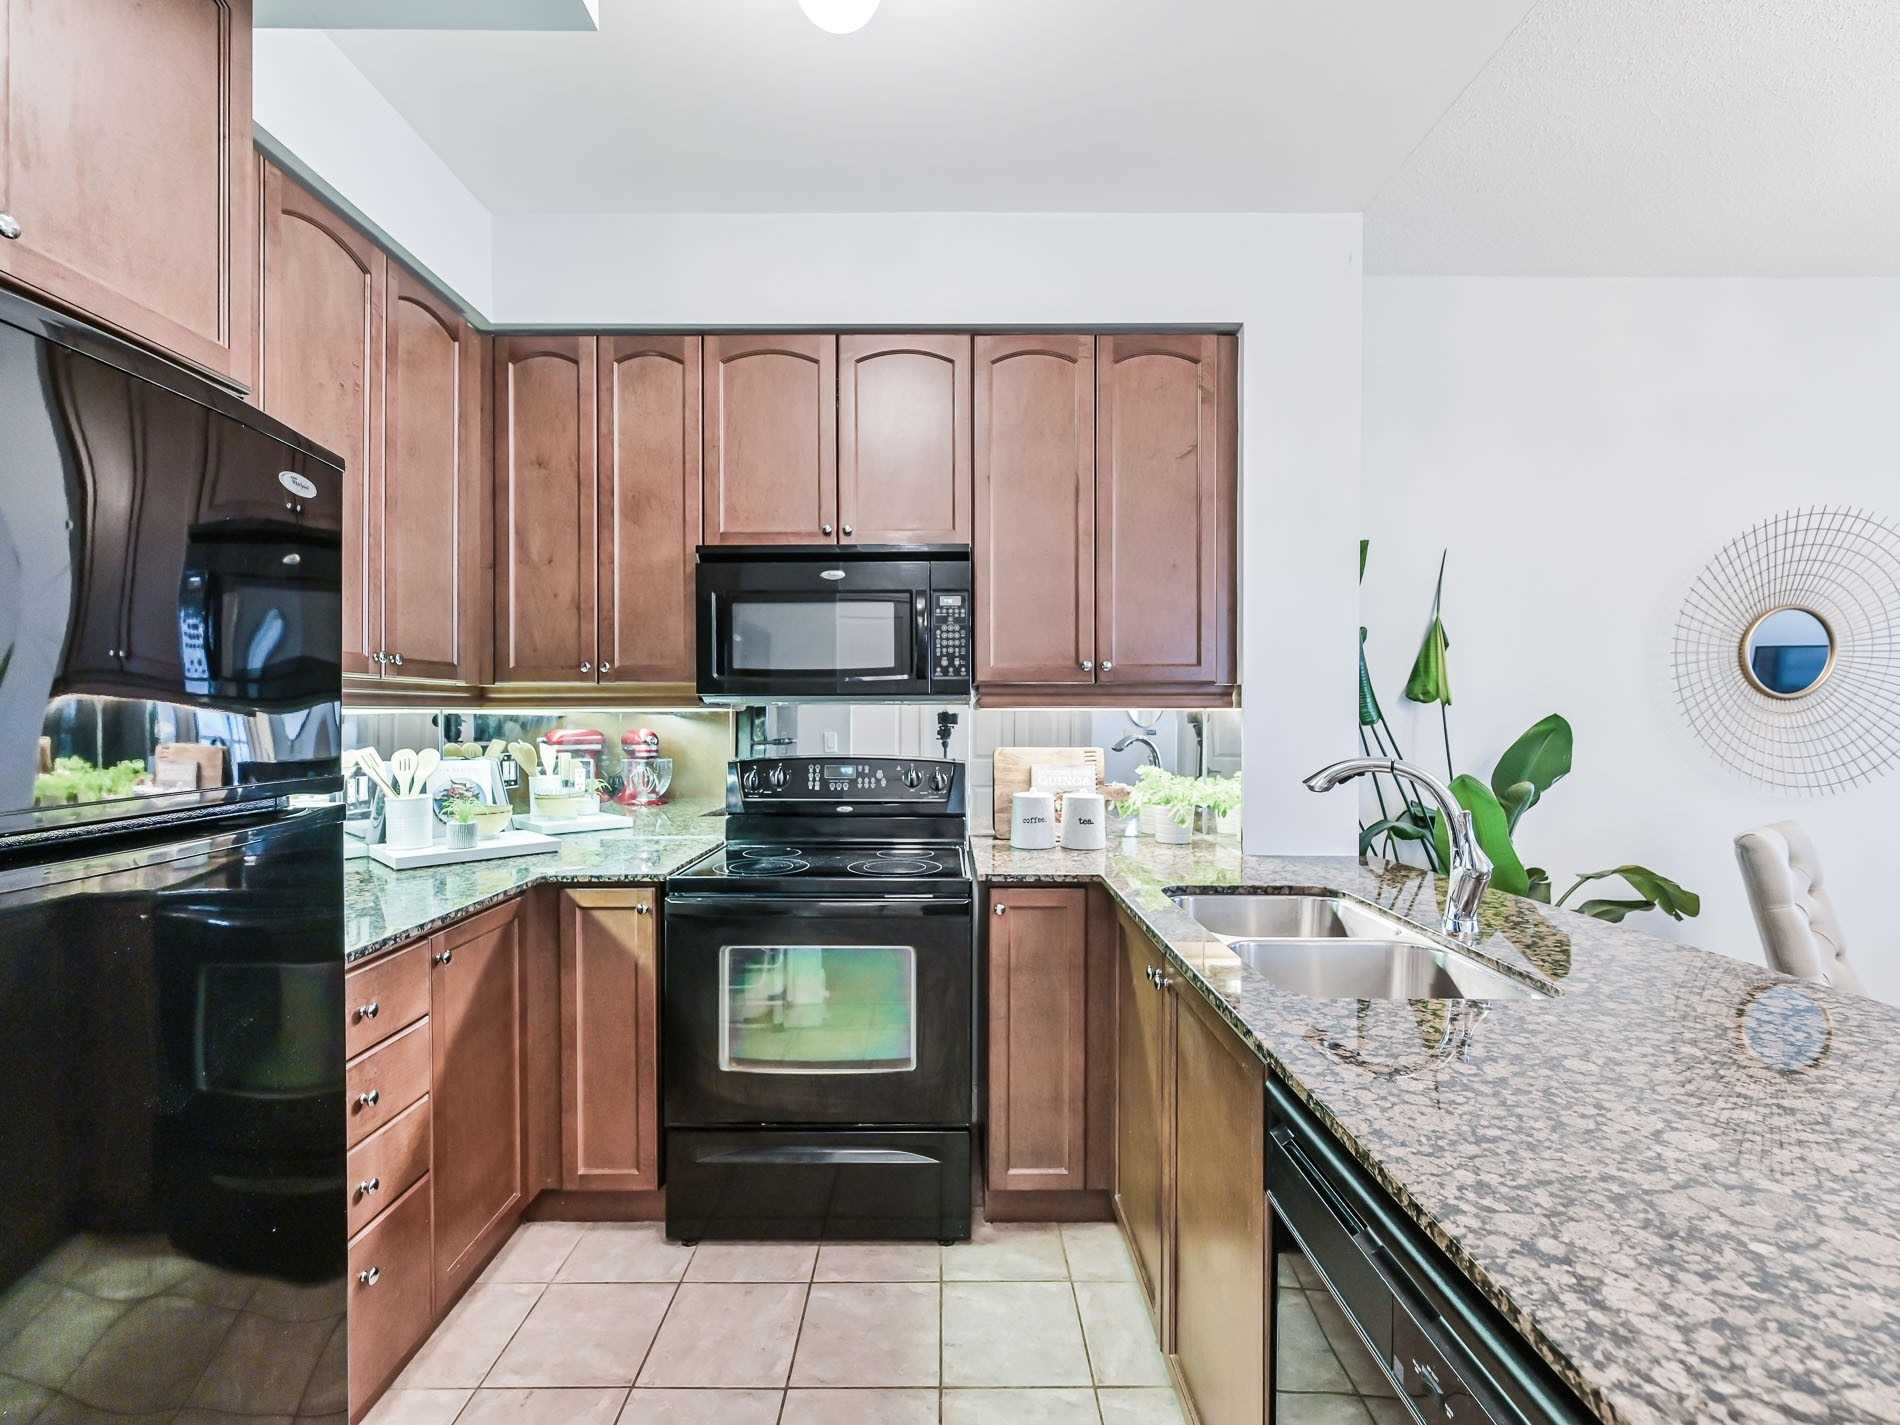 Condo Apt For Sale In Mississauga , 2 Bedrooms Bedrooms, ,1 BathroomBathrooms,Condo Apt,For Sale,902,Absolute